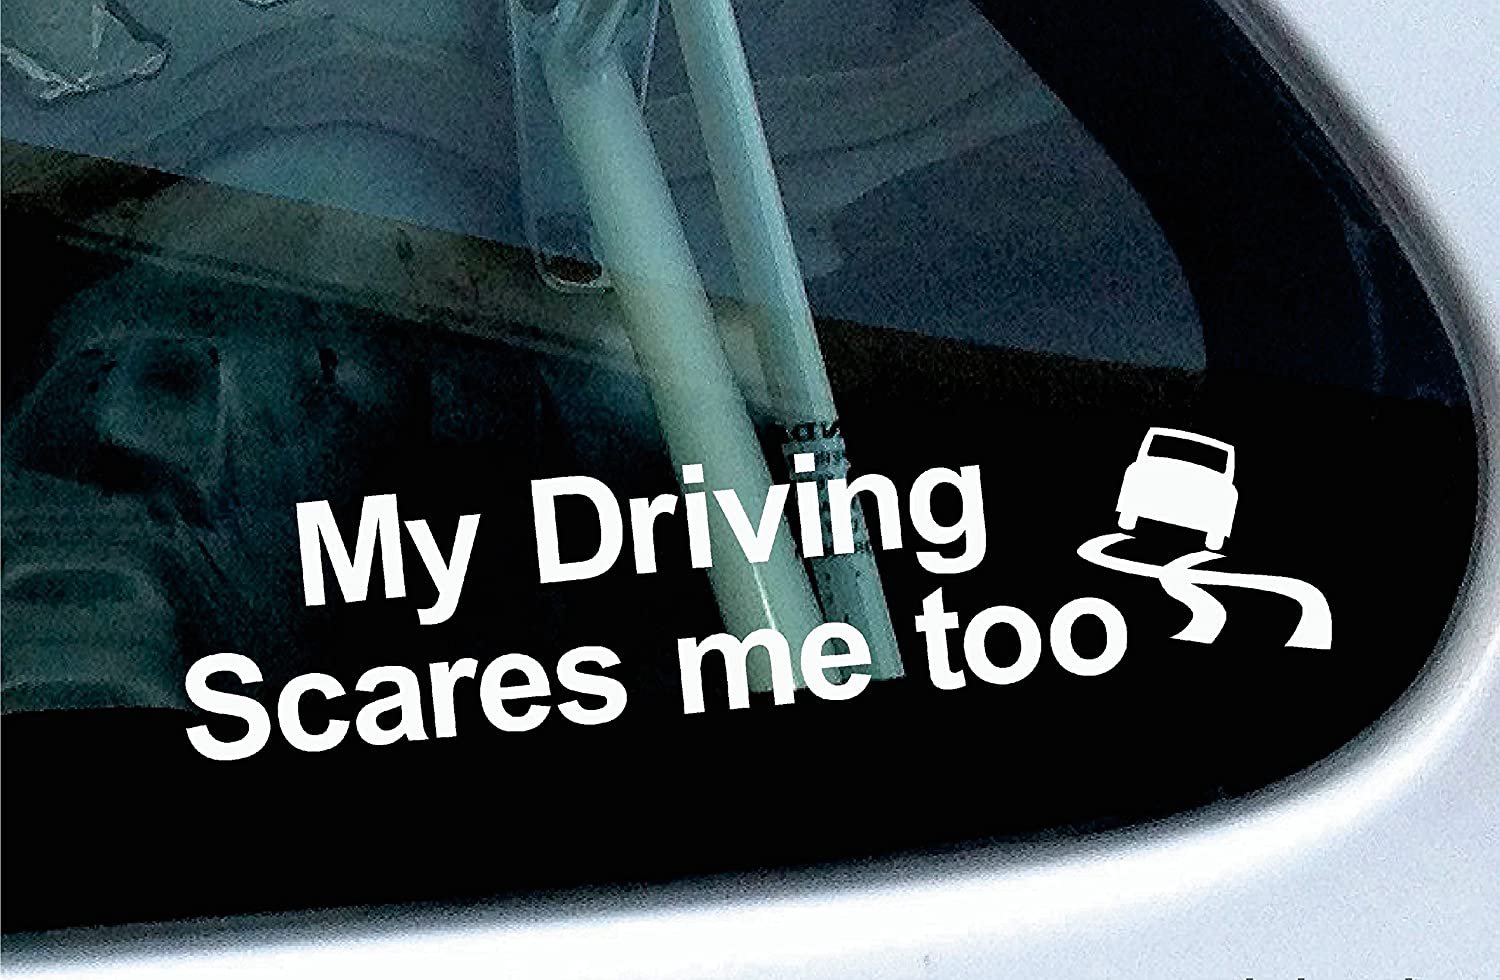 ' My driving scares me too ' funny car bumper vinyl sticker Turnerco